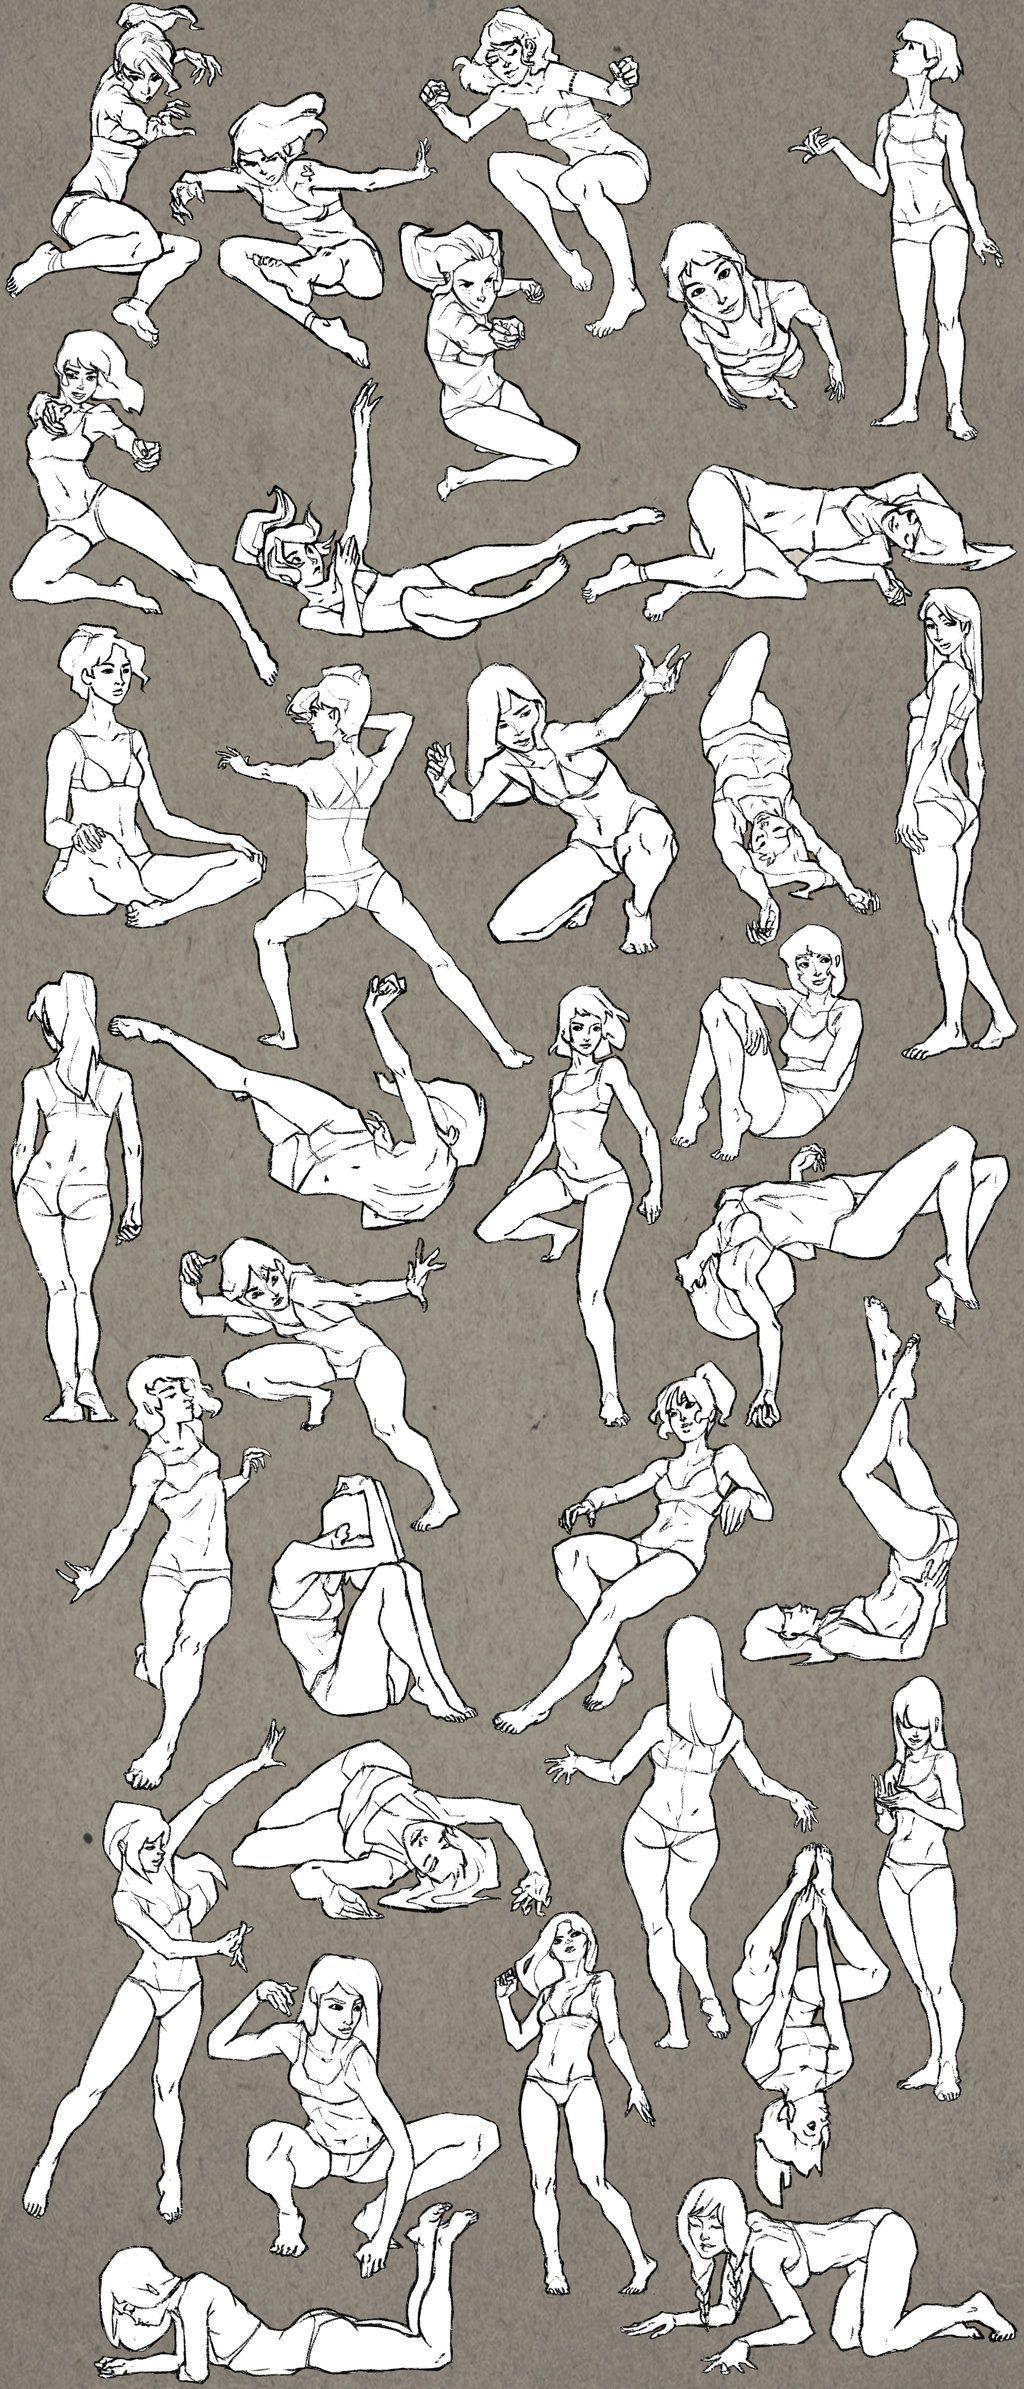 Female Study Sketchdump By Eleonorabertolucci On Deviantart Art Poses Art Reference Poses Figure Drawing Reference